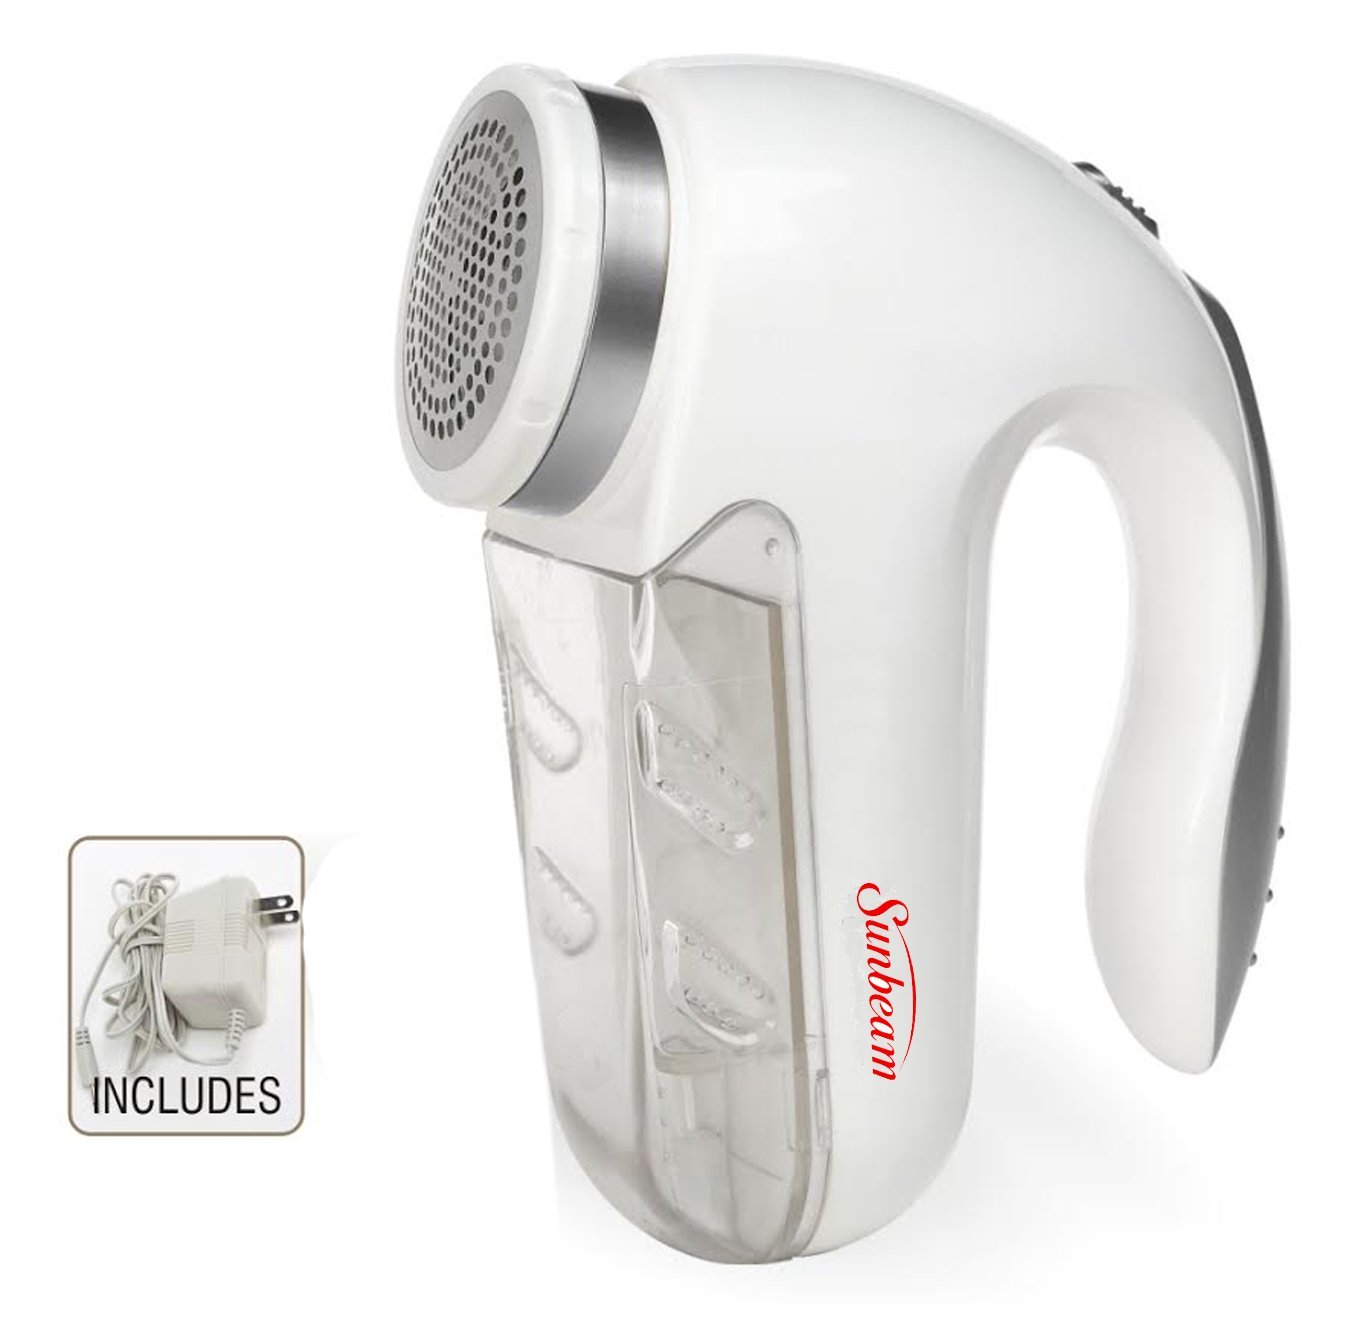 Sunbeam Deluxe Fabric Shaver